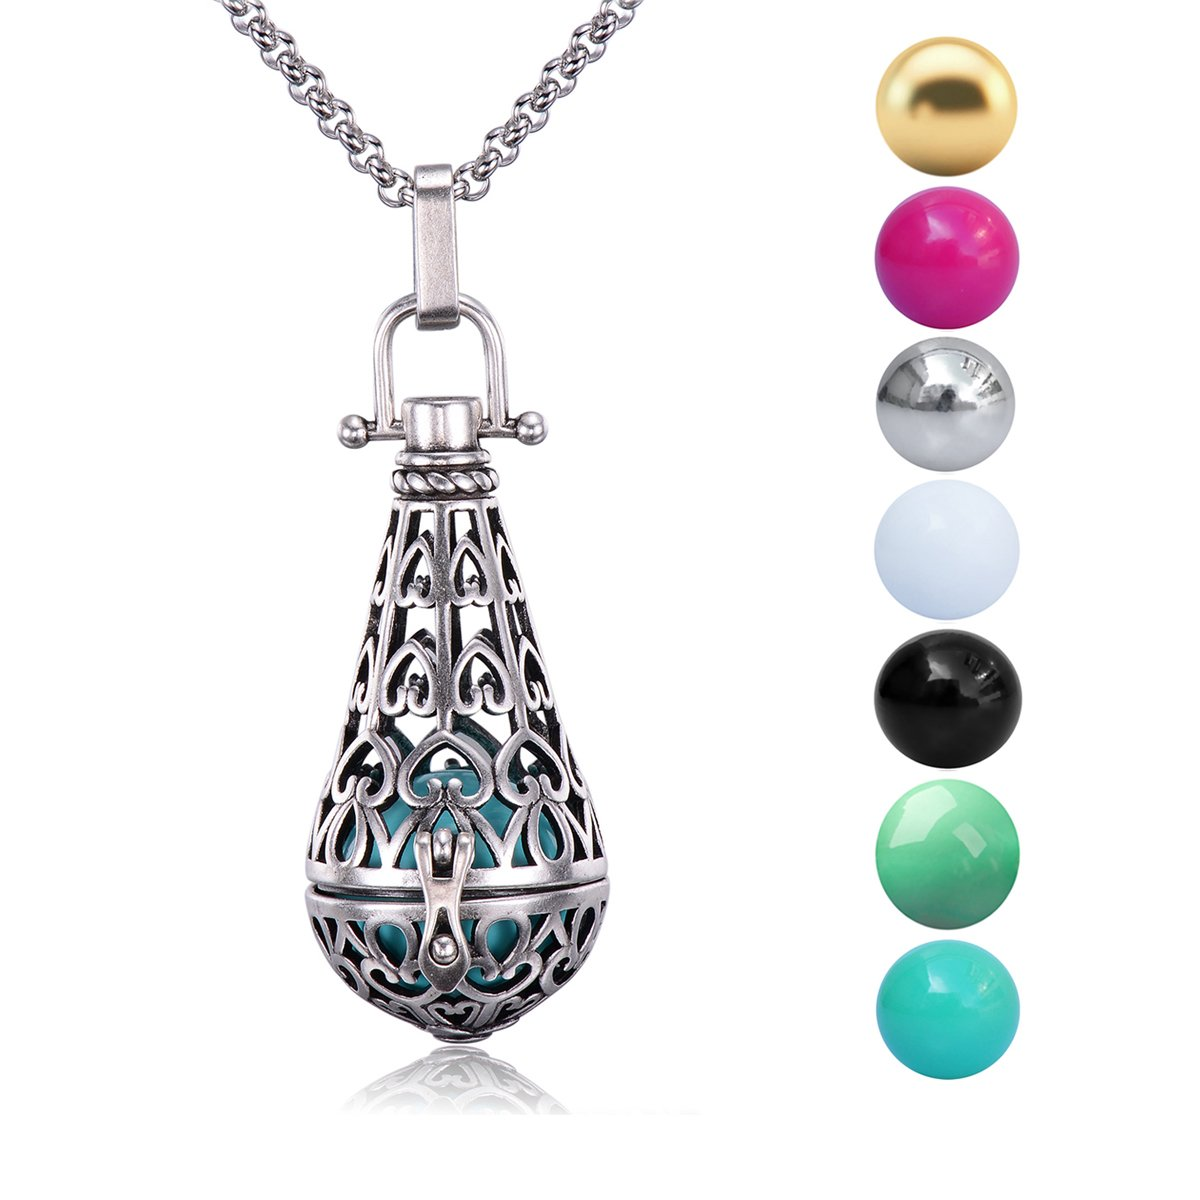 Antique Silver Teardrop Pendant 16MM Harmony Music Ball Mexican Bola Locket Pregnancy Necklace 30'' (7Pcs different color Inner Balls)